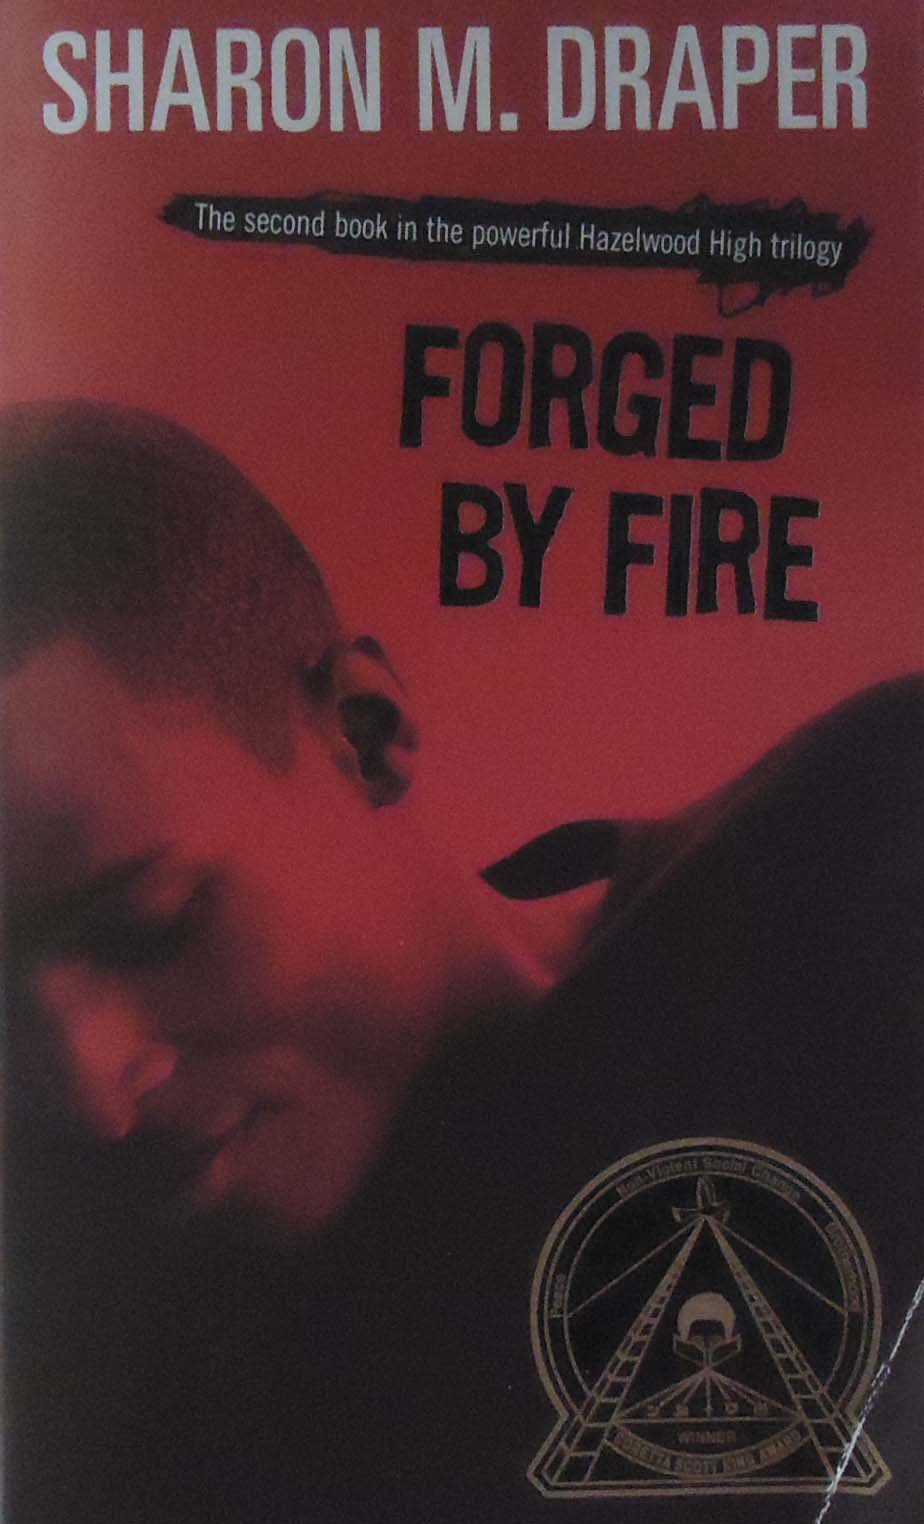 Amazon.com: Forged by Fire (9780689818516): Sharon M. Draper: Books